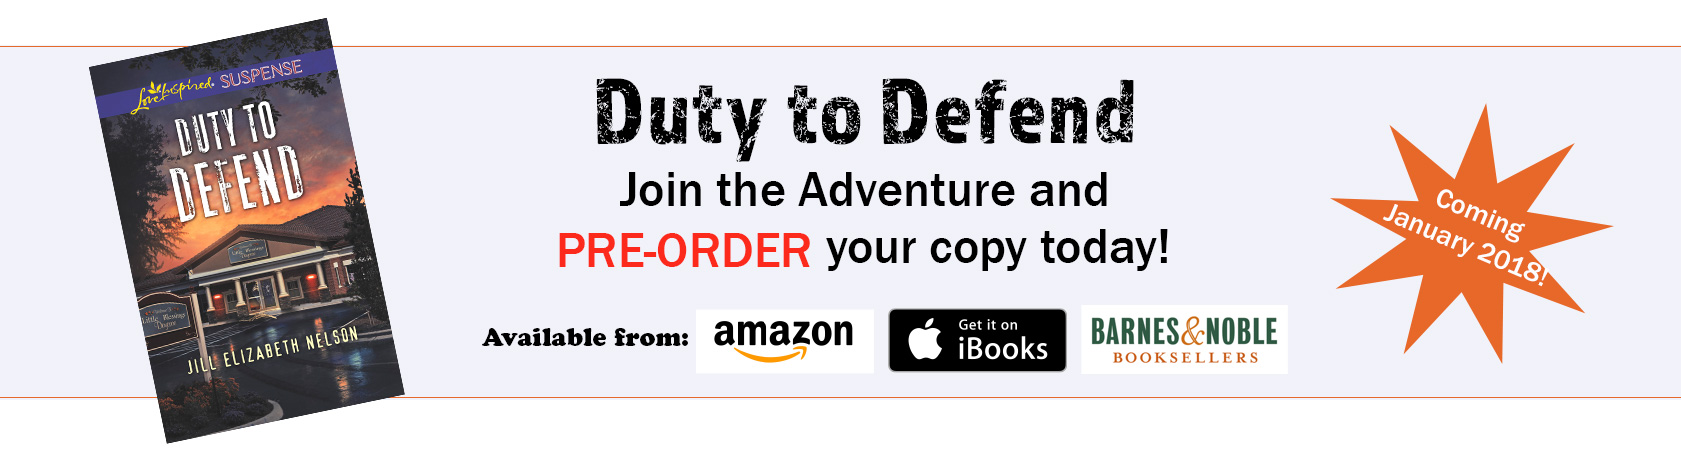 Read about Jill Elizabeth Nelson's Newest Book Duty To Defend Today!